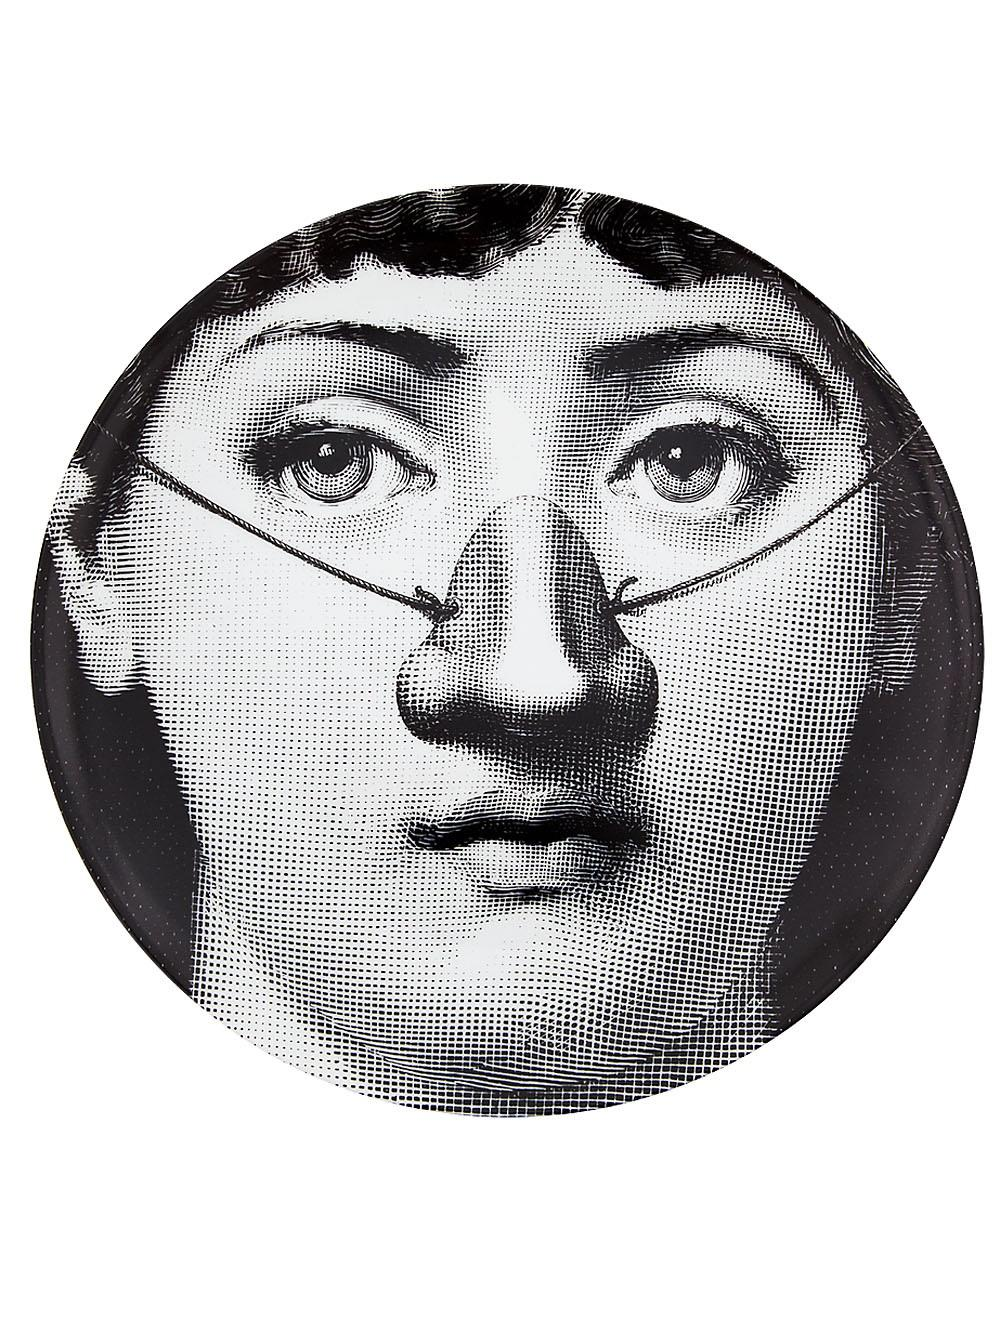 Decorative Face Plates Cool 7 Inch Fornasetti Plate Desktop Decorative Craft Plates Beauty Review